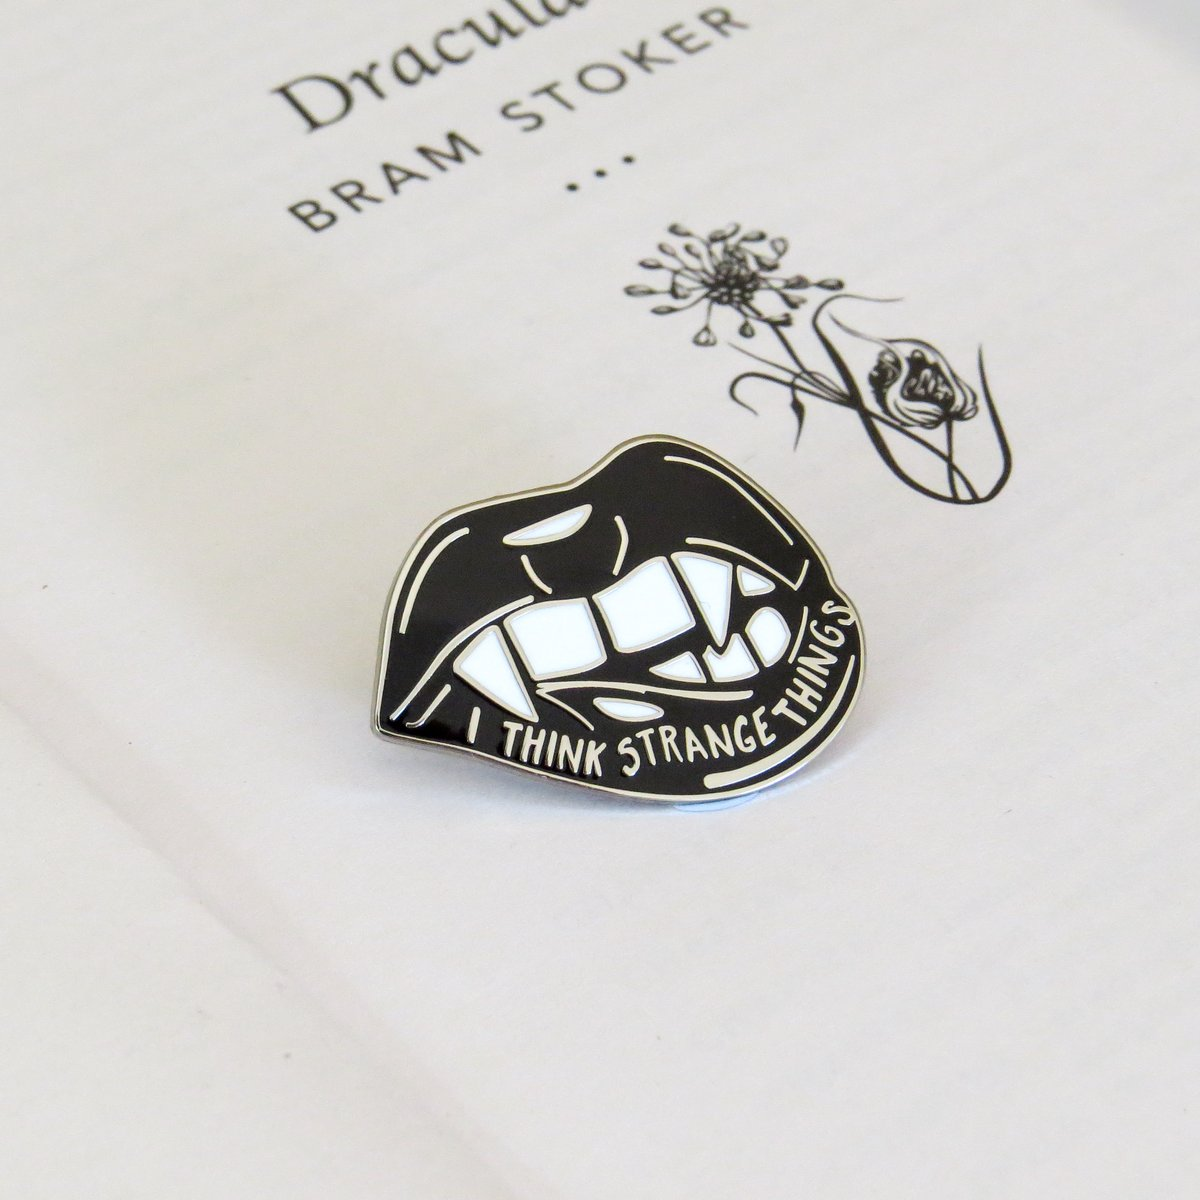 Enamel Pin Badge - Vampire - Dracula